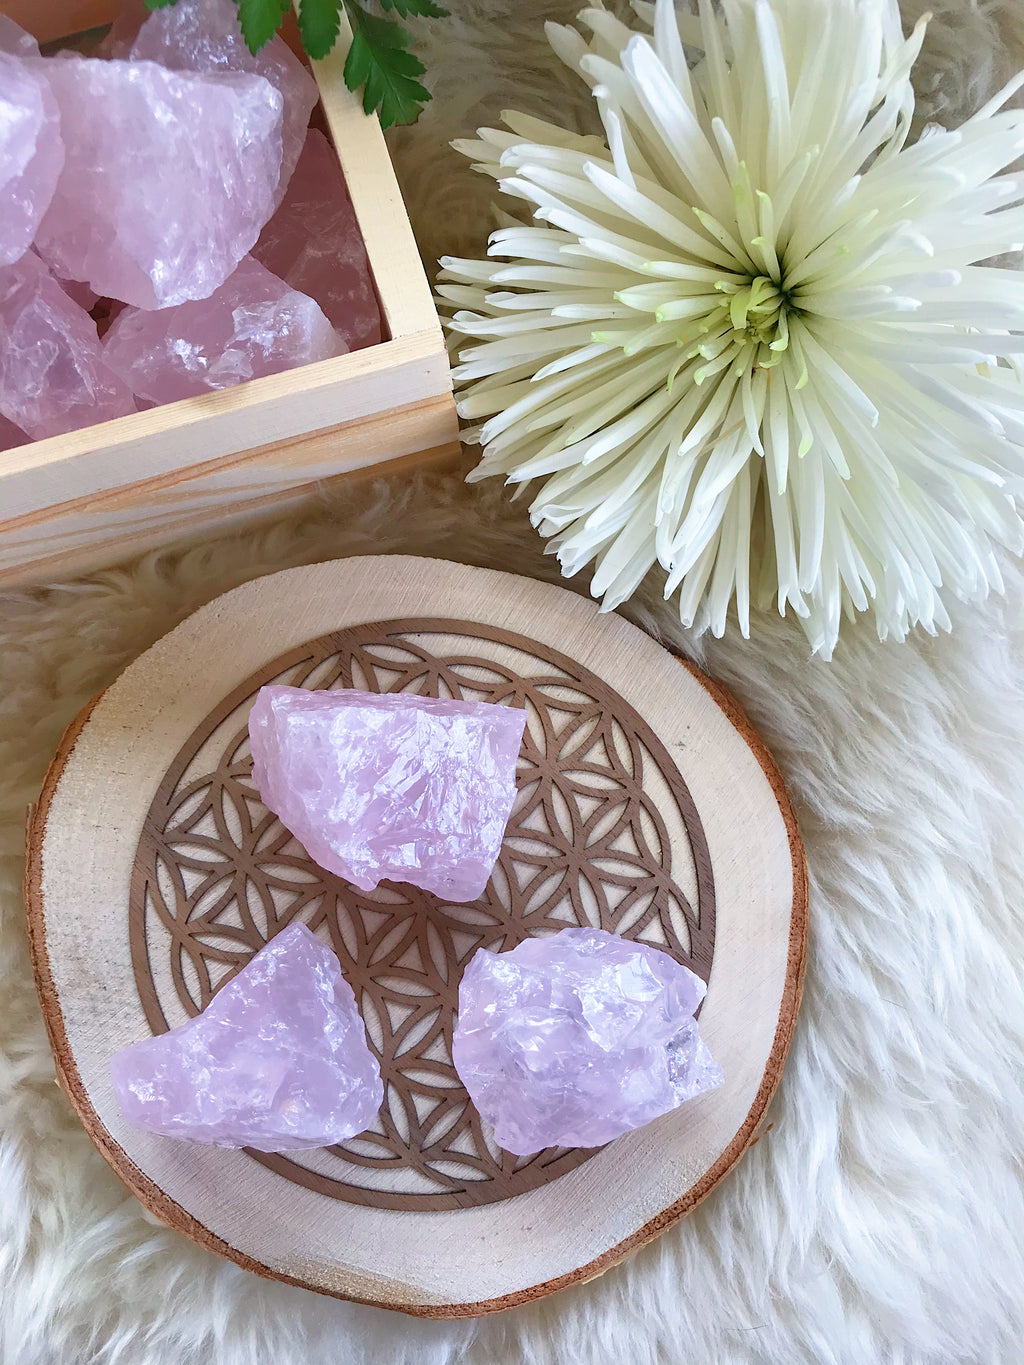 Rough Rose Quartz for Love & Relationships